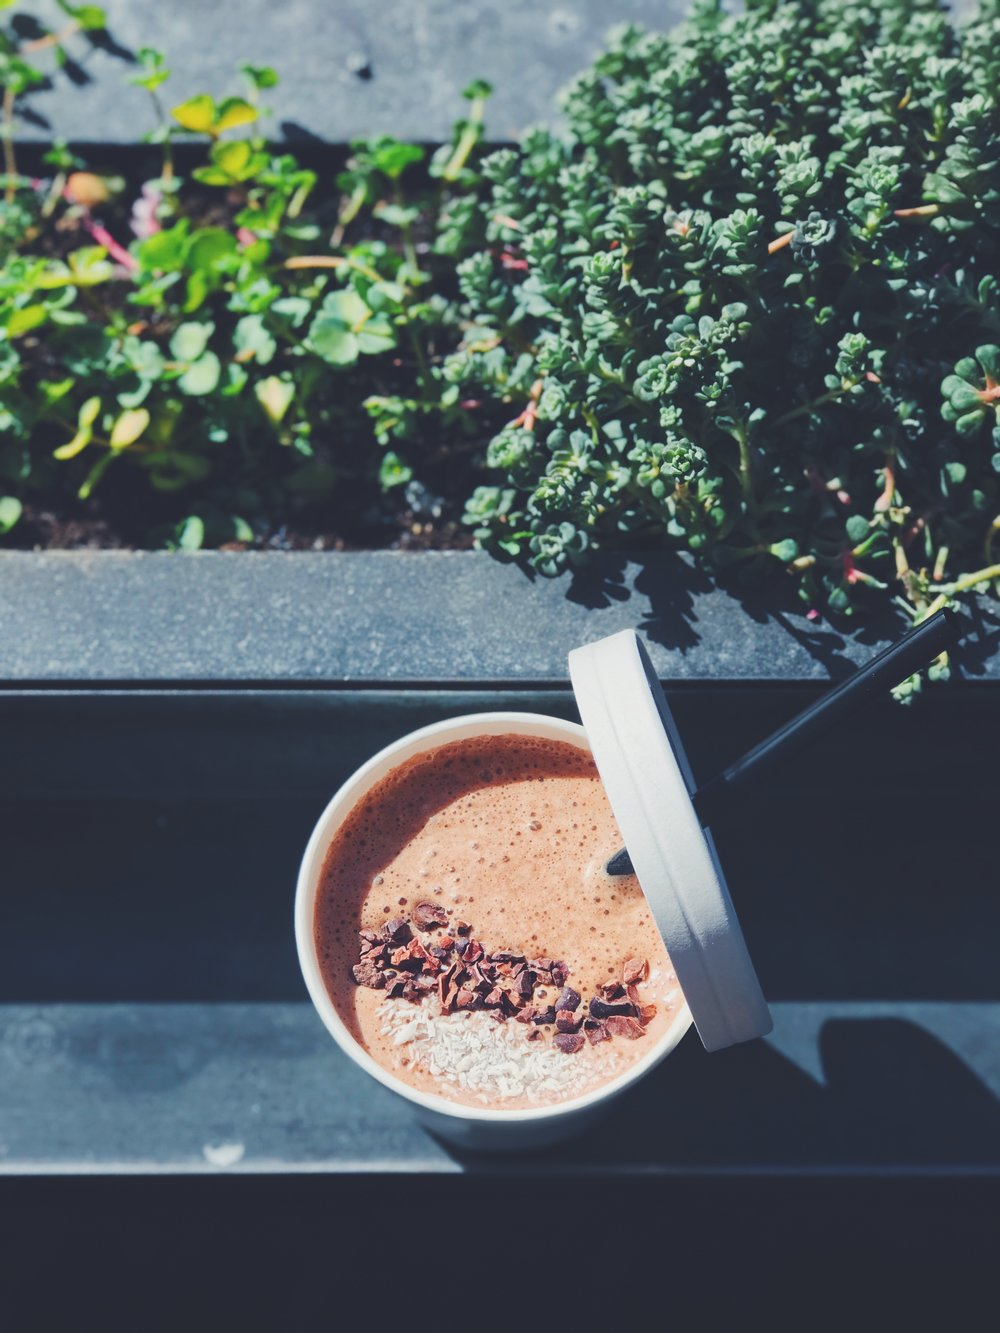 Chocolate Adaptogen Mylkshake